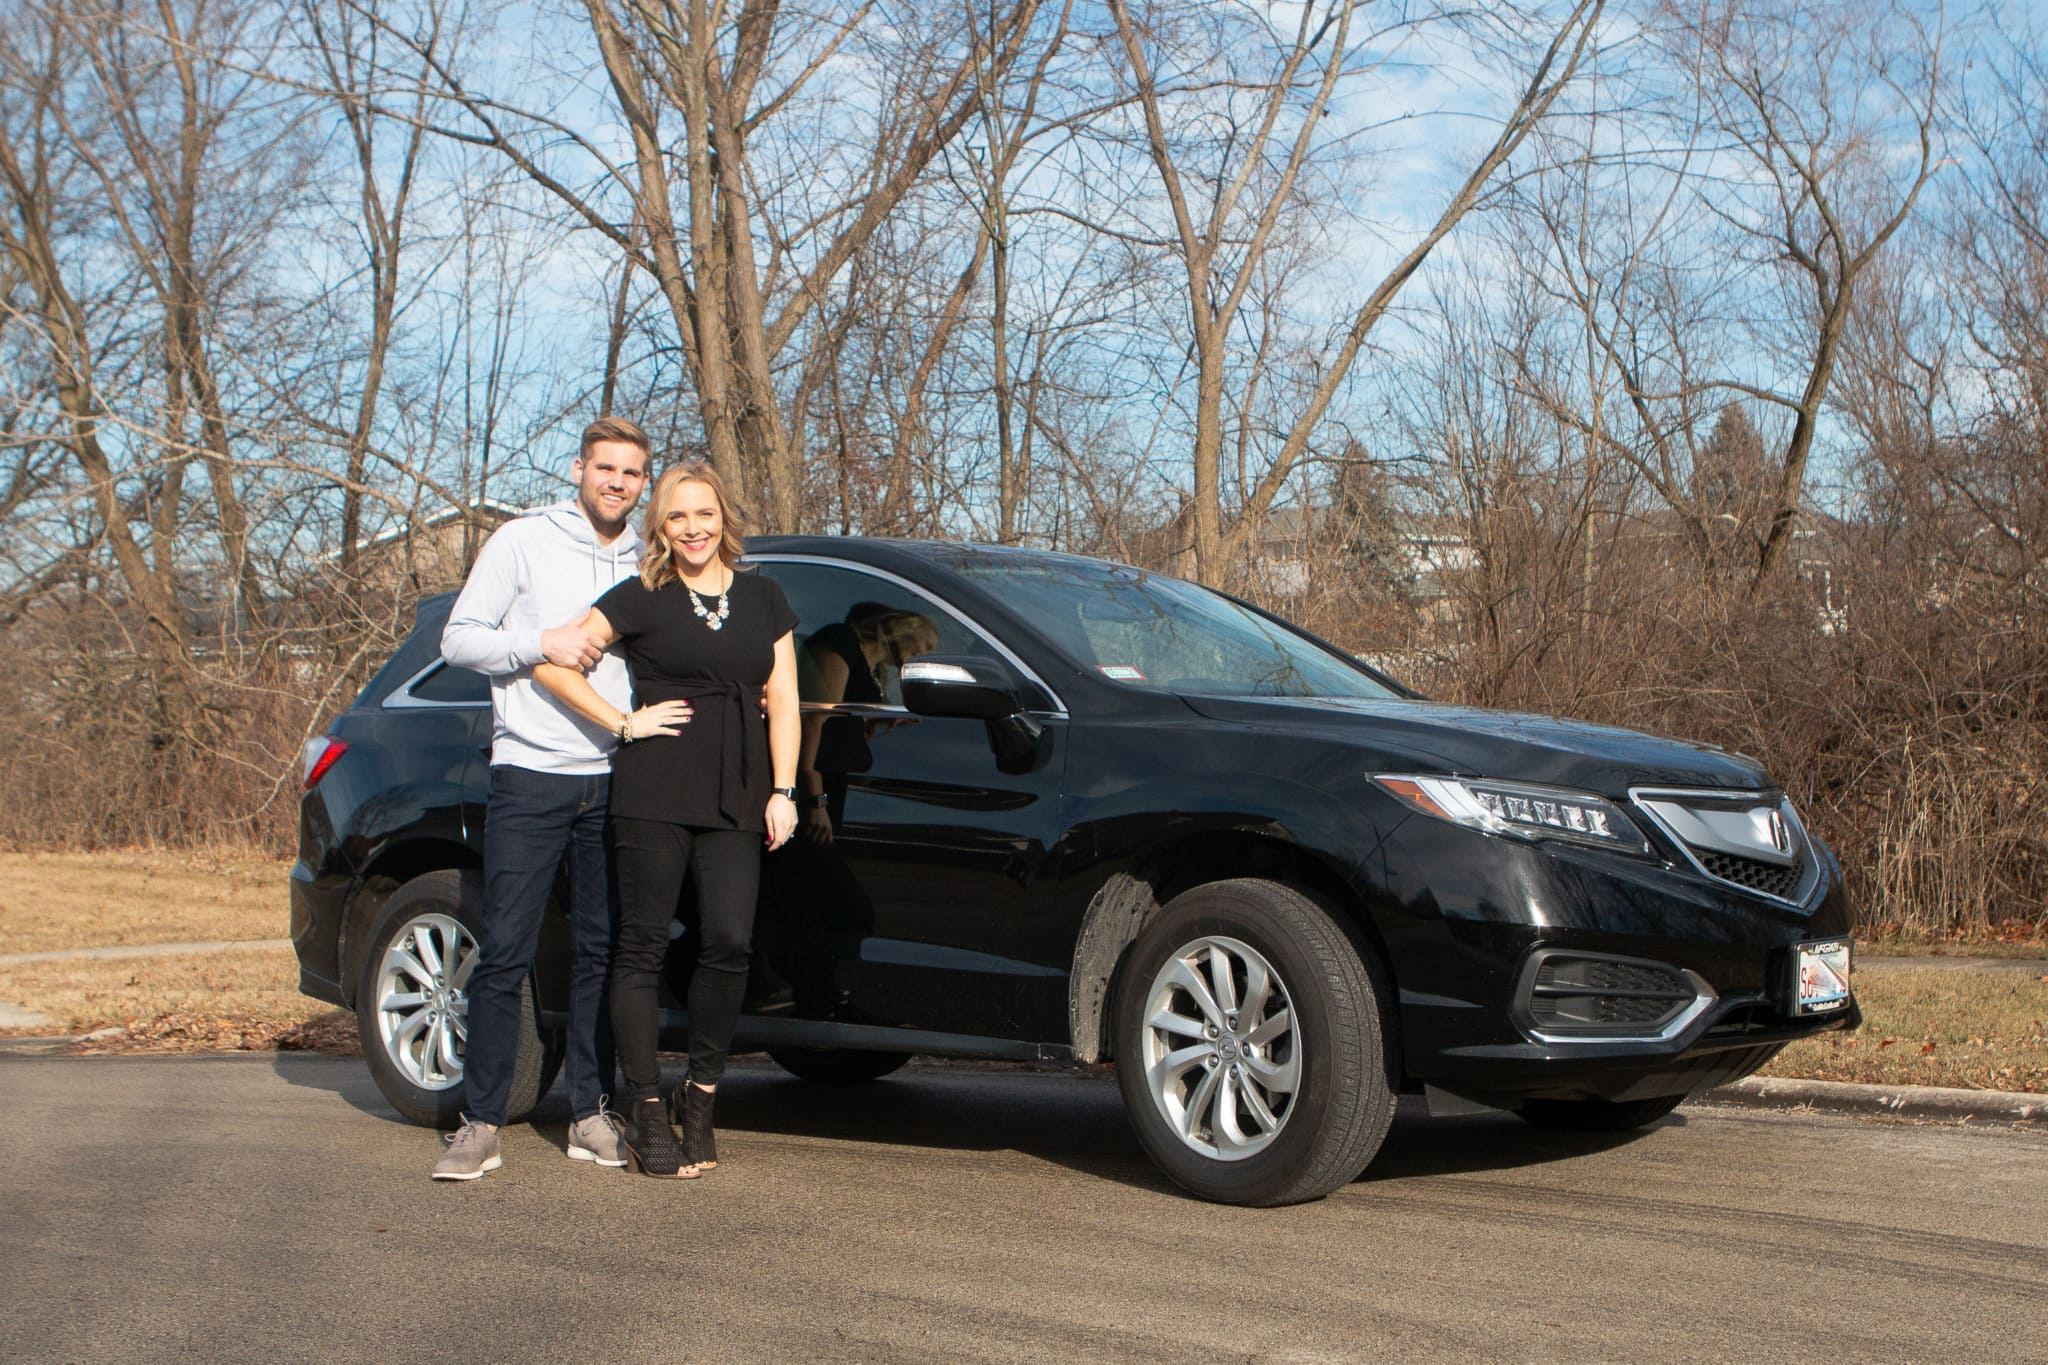 Why we bought an Acura RDX